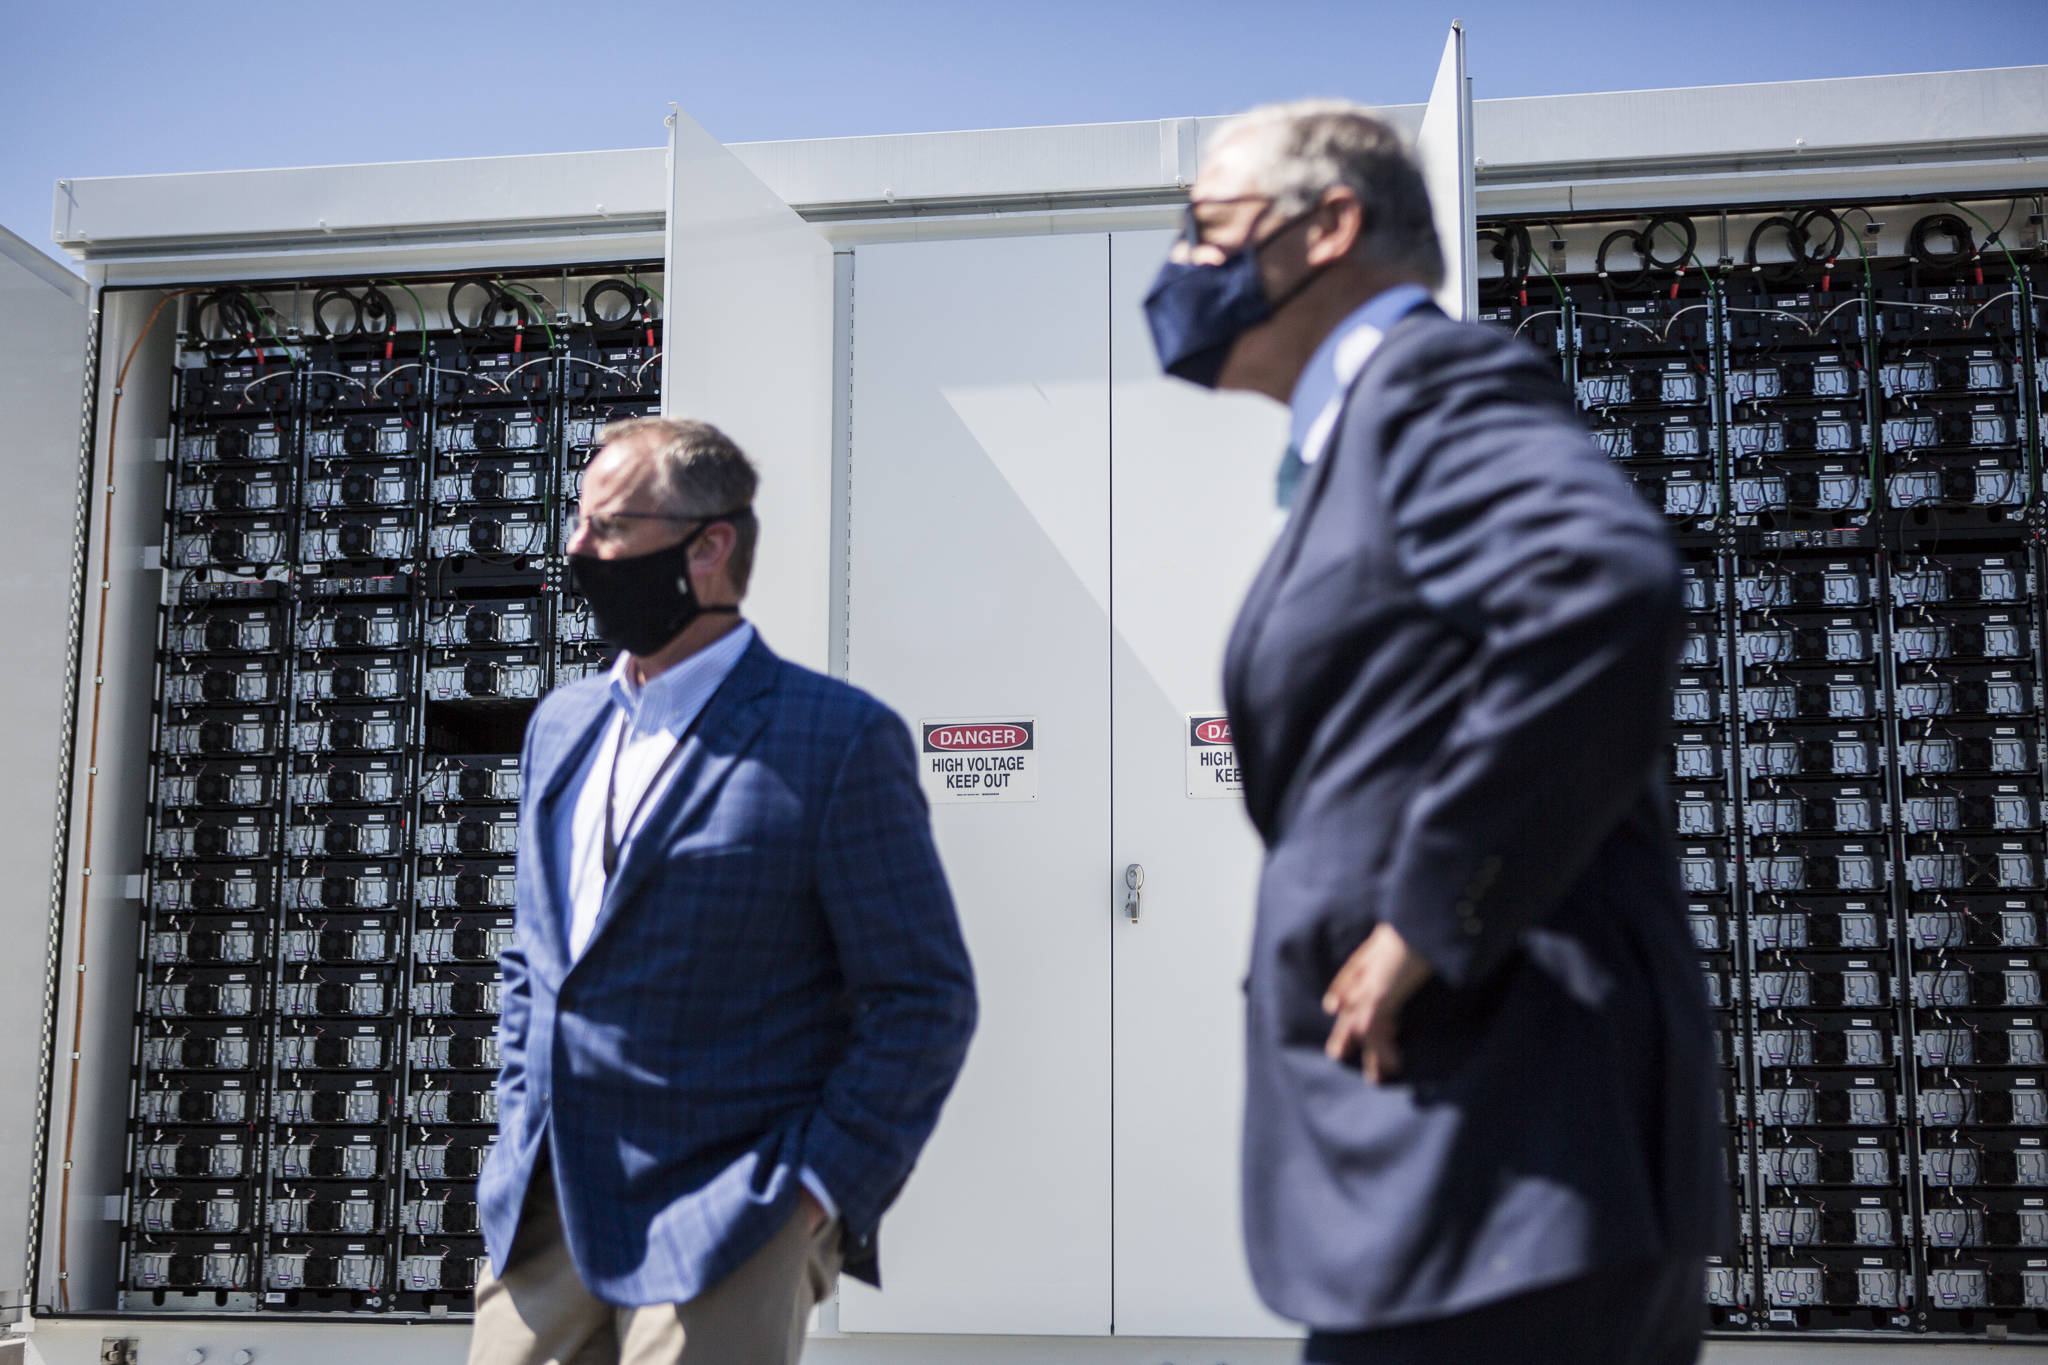 Snohomish County PUD's innovative microgrid batteries, which will store solar power, sit in their enclosed units during a visit by Gov. Jay Inslee. (Olivia Vanni / The Herald)